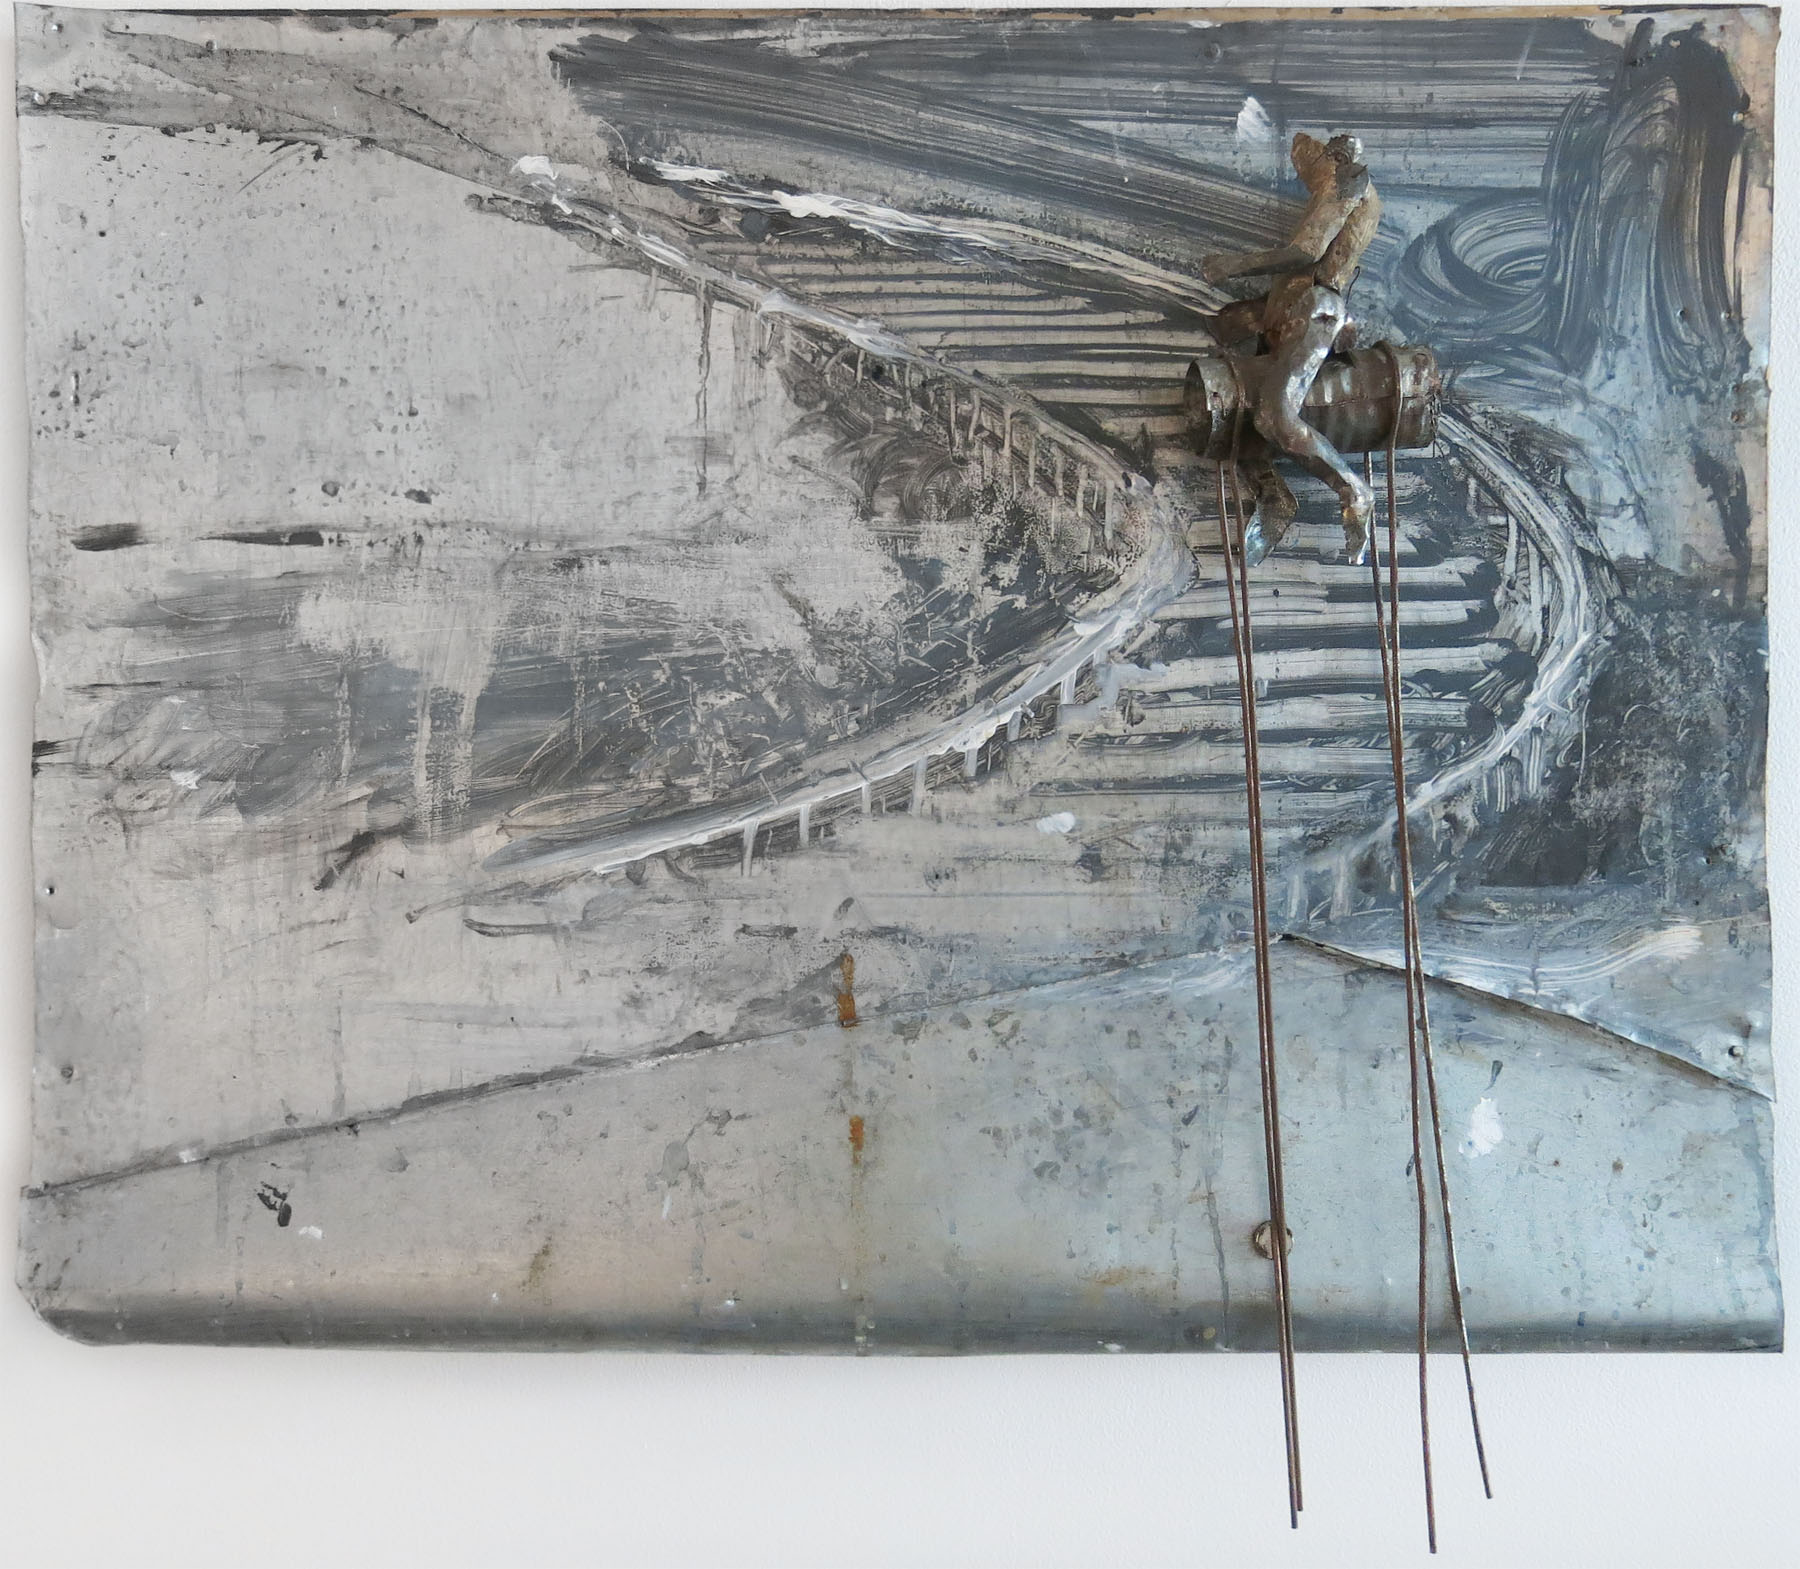 June Leaf, Figure Riding Staircase, 2015-2016, acrylic, tin and wire, magnets on tin, 21h x 23.5w x 4.5d in.